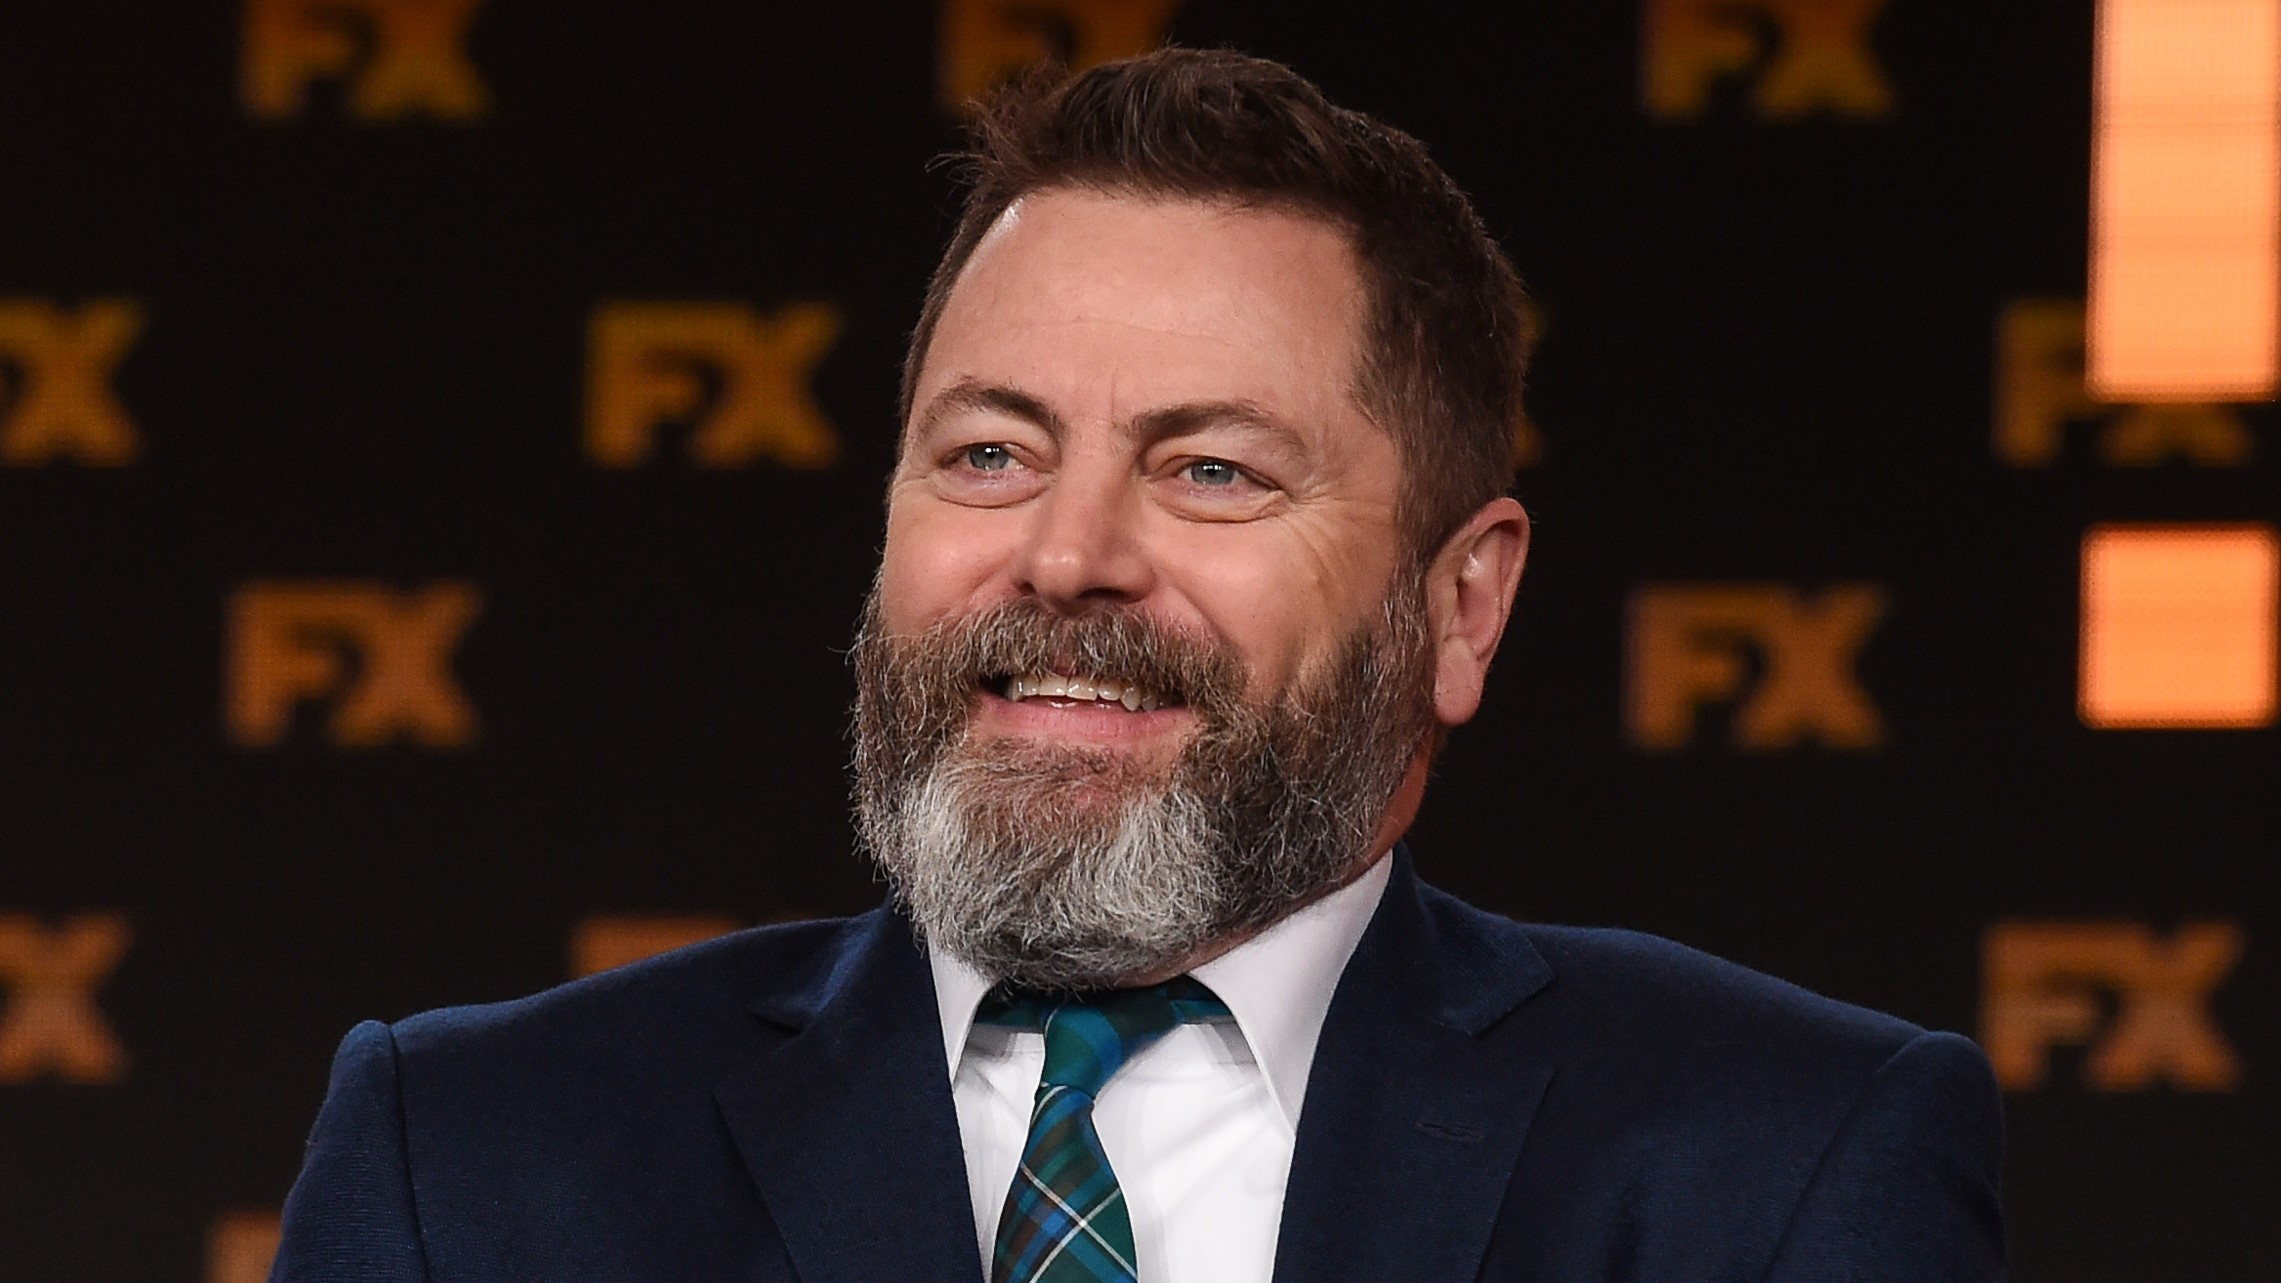 Nick Offerman [CANCELLED] at Orpheum Theatre Minneapolis